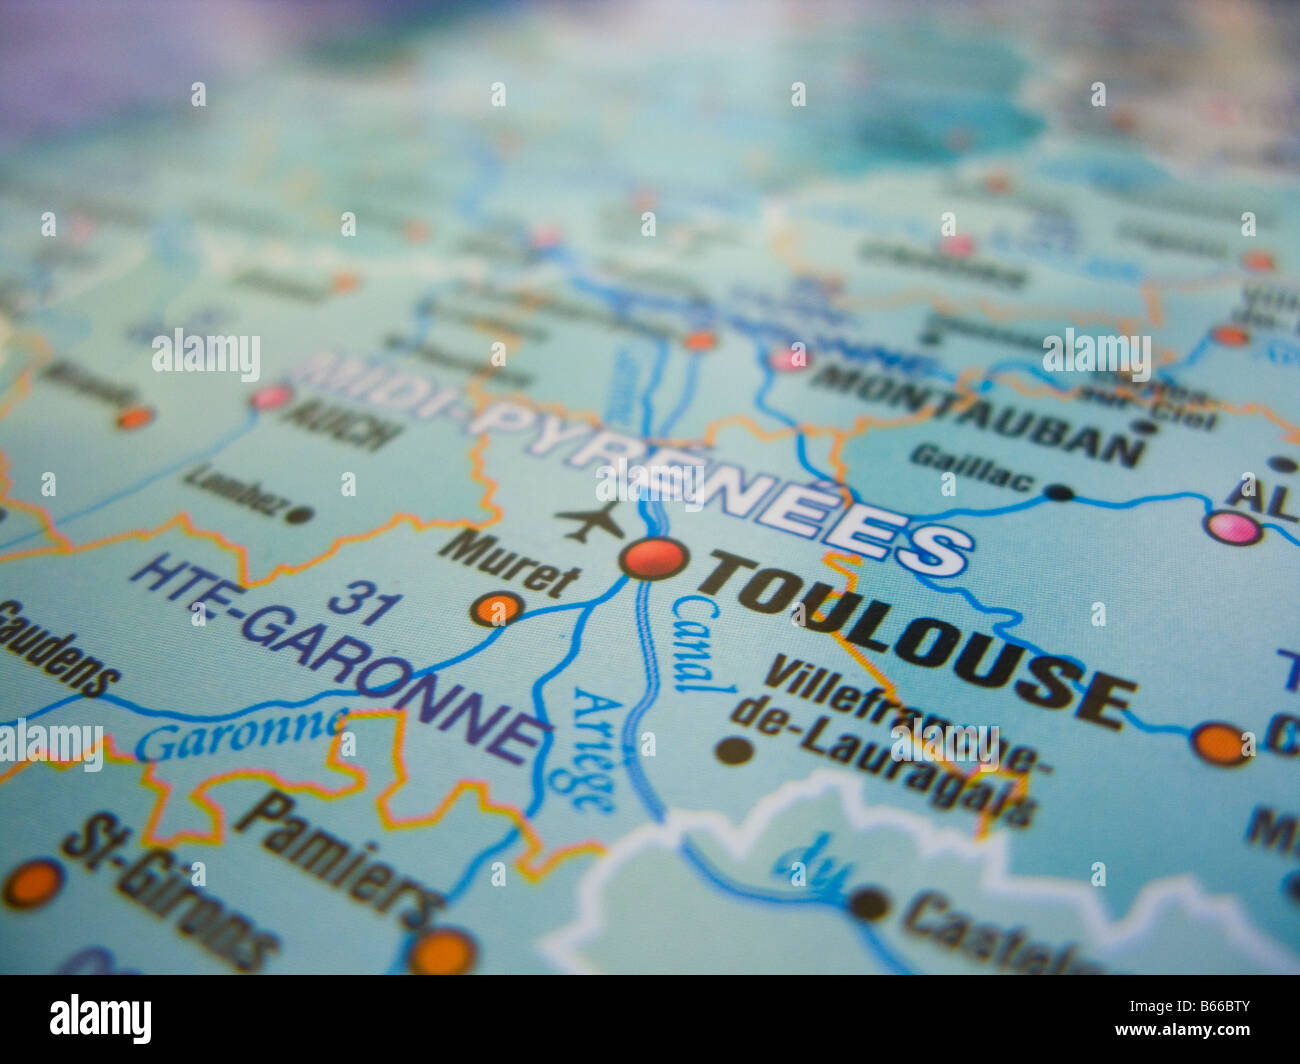 Areas Of France Map.Map Of France Showing Toulouse And Its Surrounding Areas Stock Photo